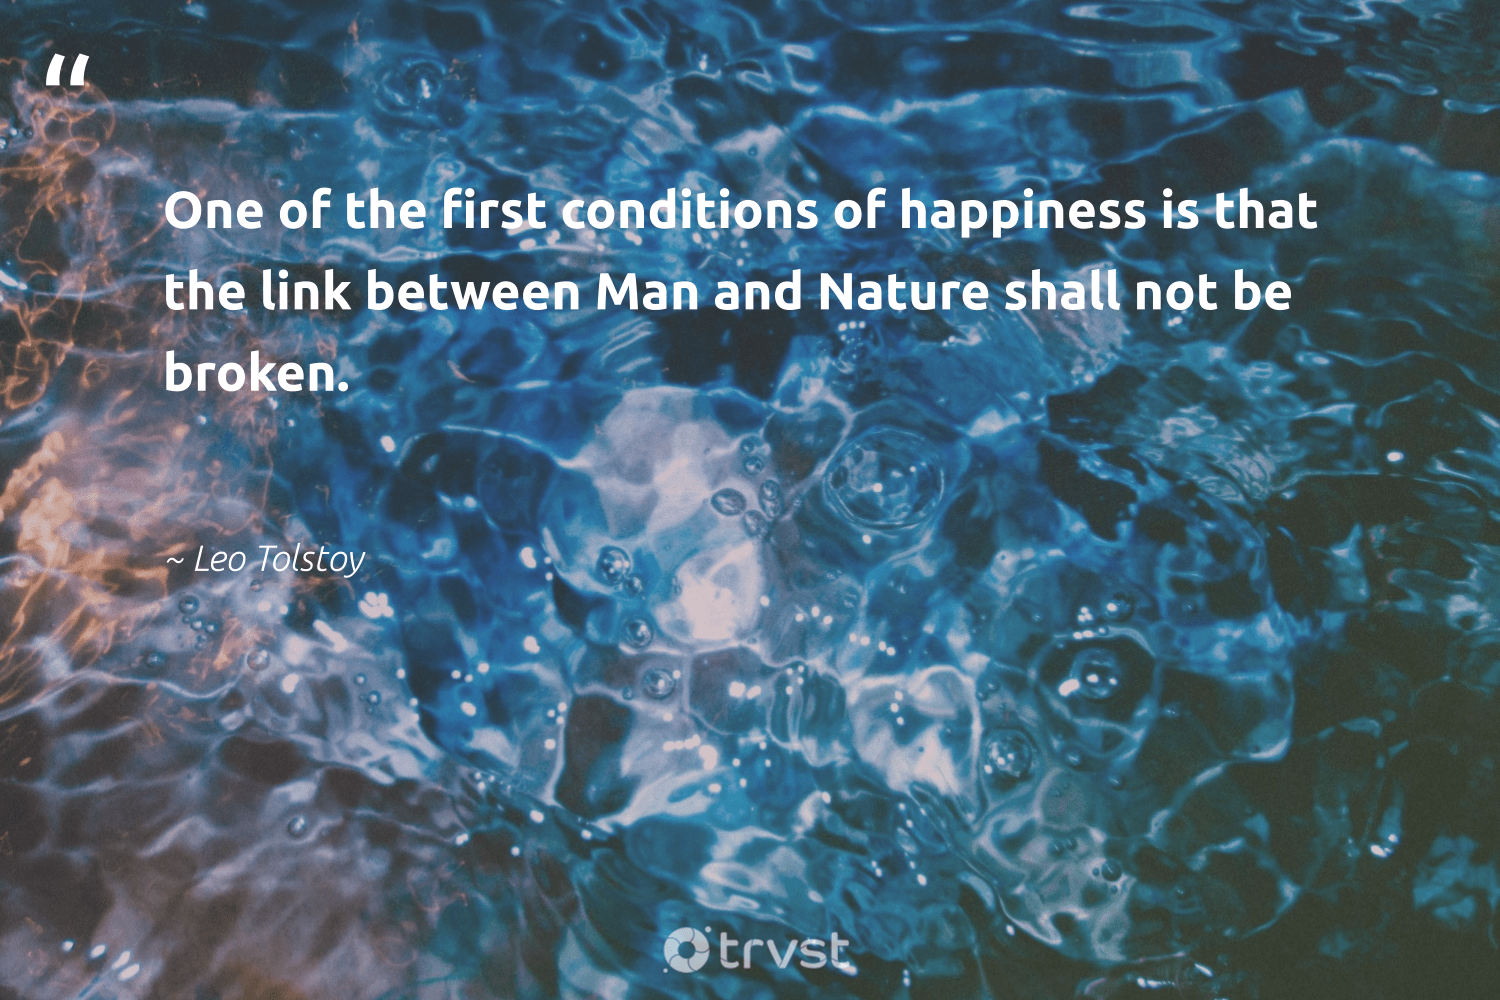 """""""One of the first conditions of happiness is that the link between Man and Nature shall not be broken.""""  - Leo Tolstoy #trvst #quotes #environment #nature #happiness #earth #noplanetb #giveback #beinspired #planet #sustainableliving #wildlifeplanet"""